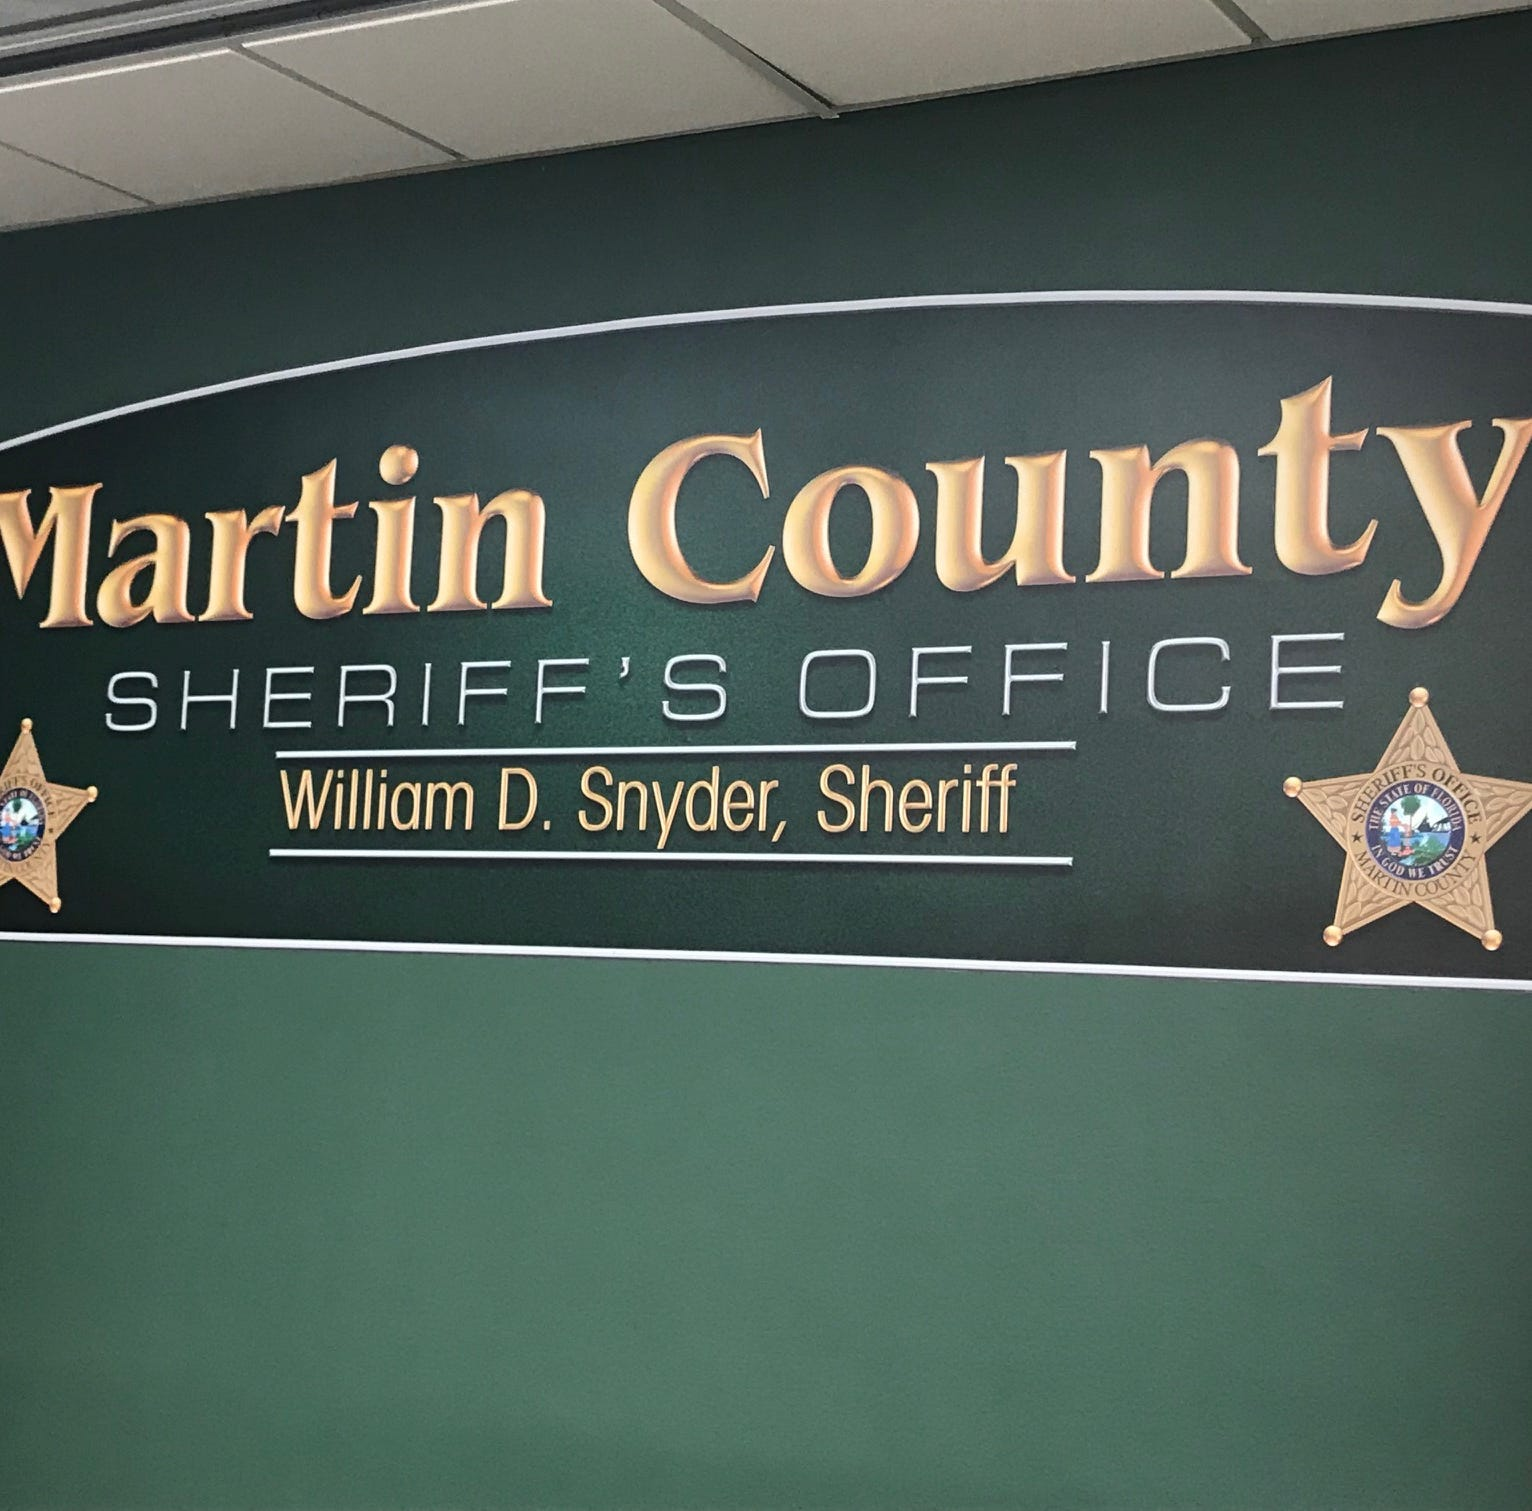 Miami man accused of poaching 23-point deer on state land in Martin County